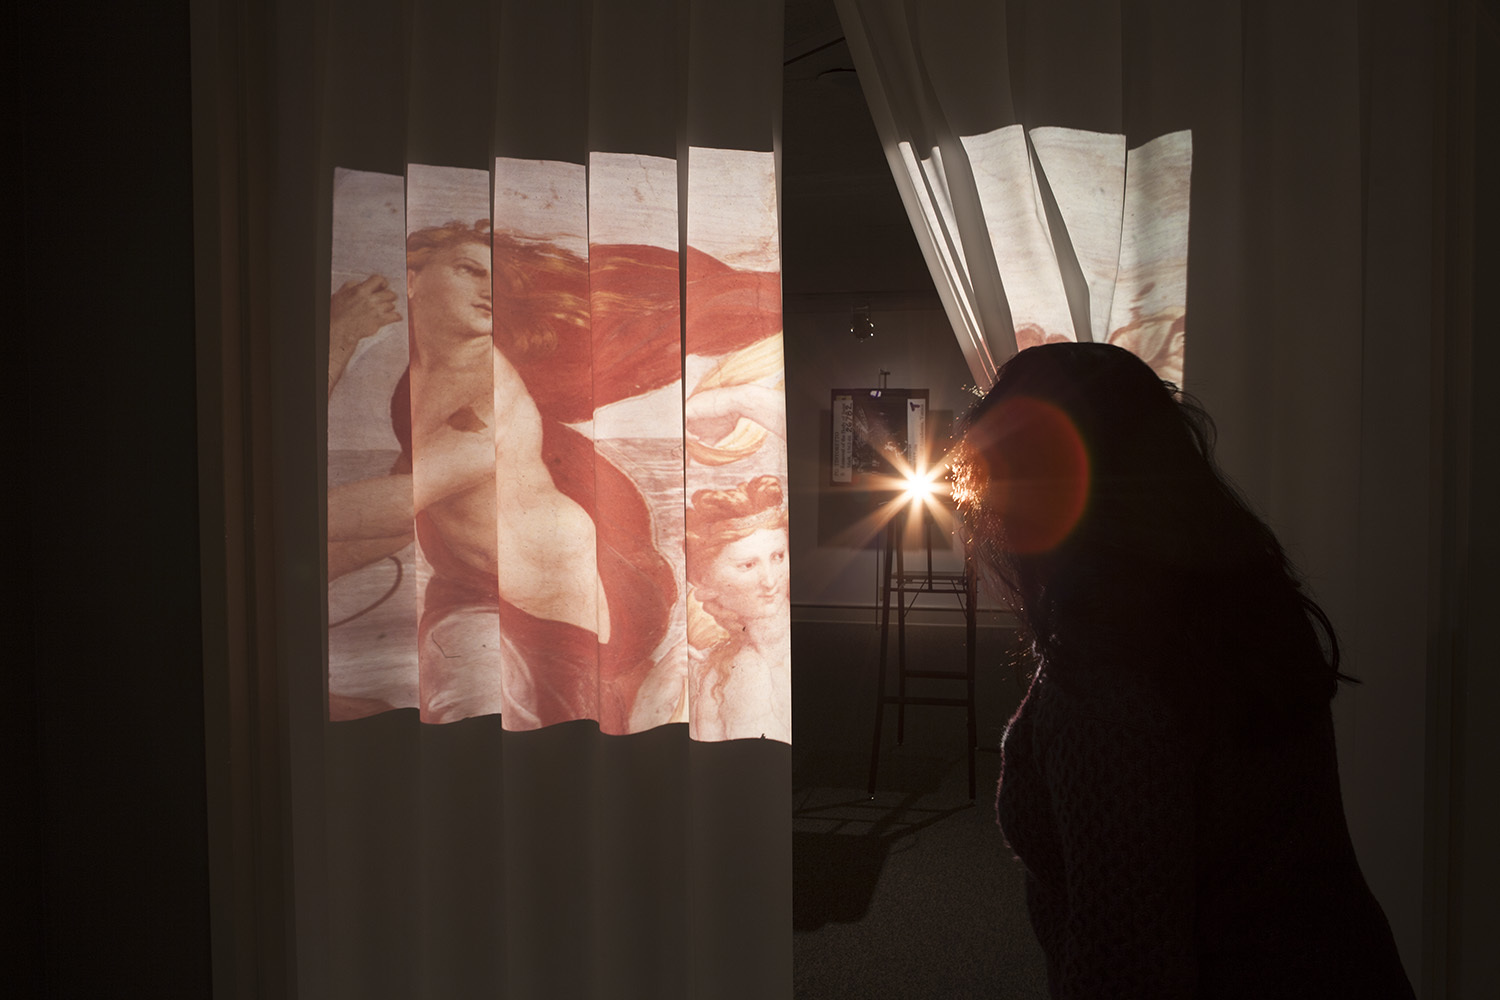 Vesna Pavlović, Fall and Folds, Photographic installation, Kodak 35mm slide projector, 80 photographic slides, rear screen fabric curtain, Installation view at Vesna Pavlović: Fall and Folds, The Columbus Museum, GA, 2017